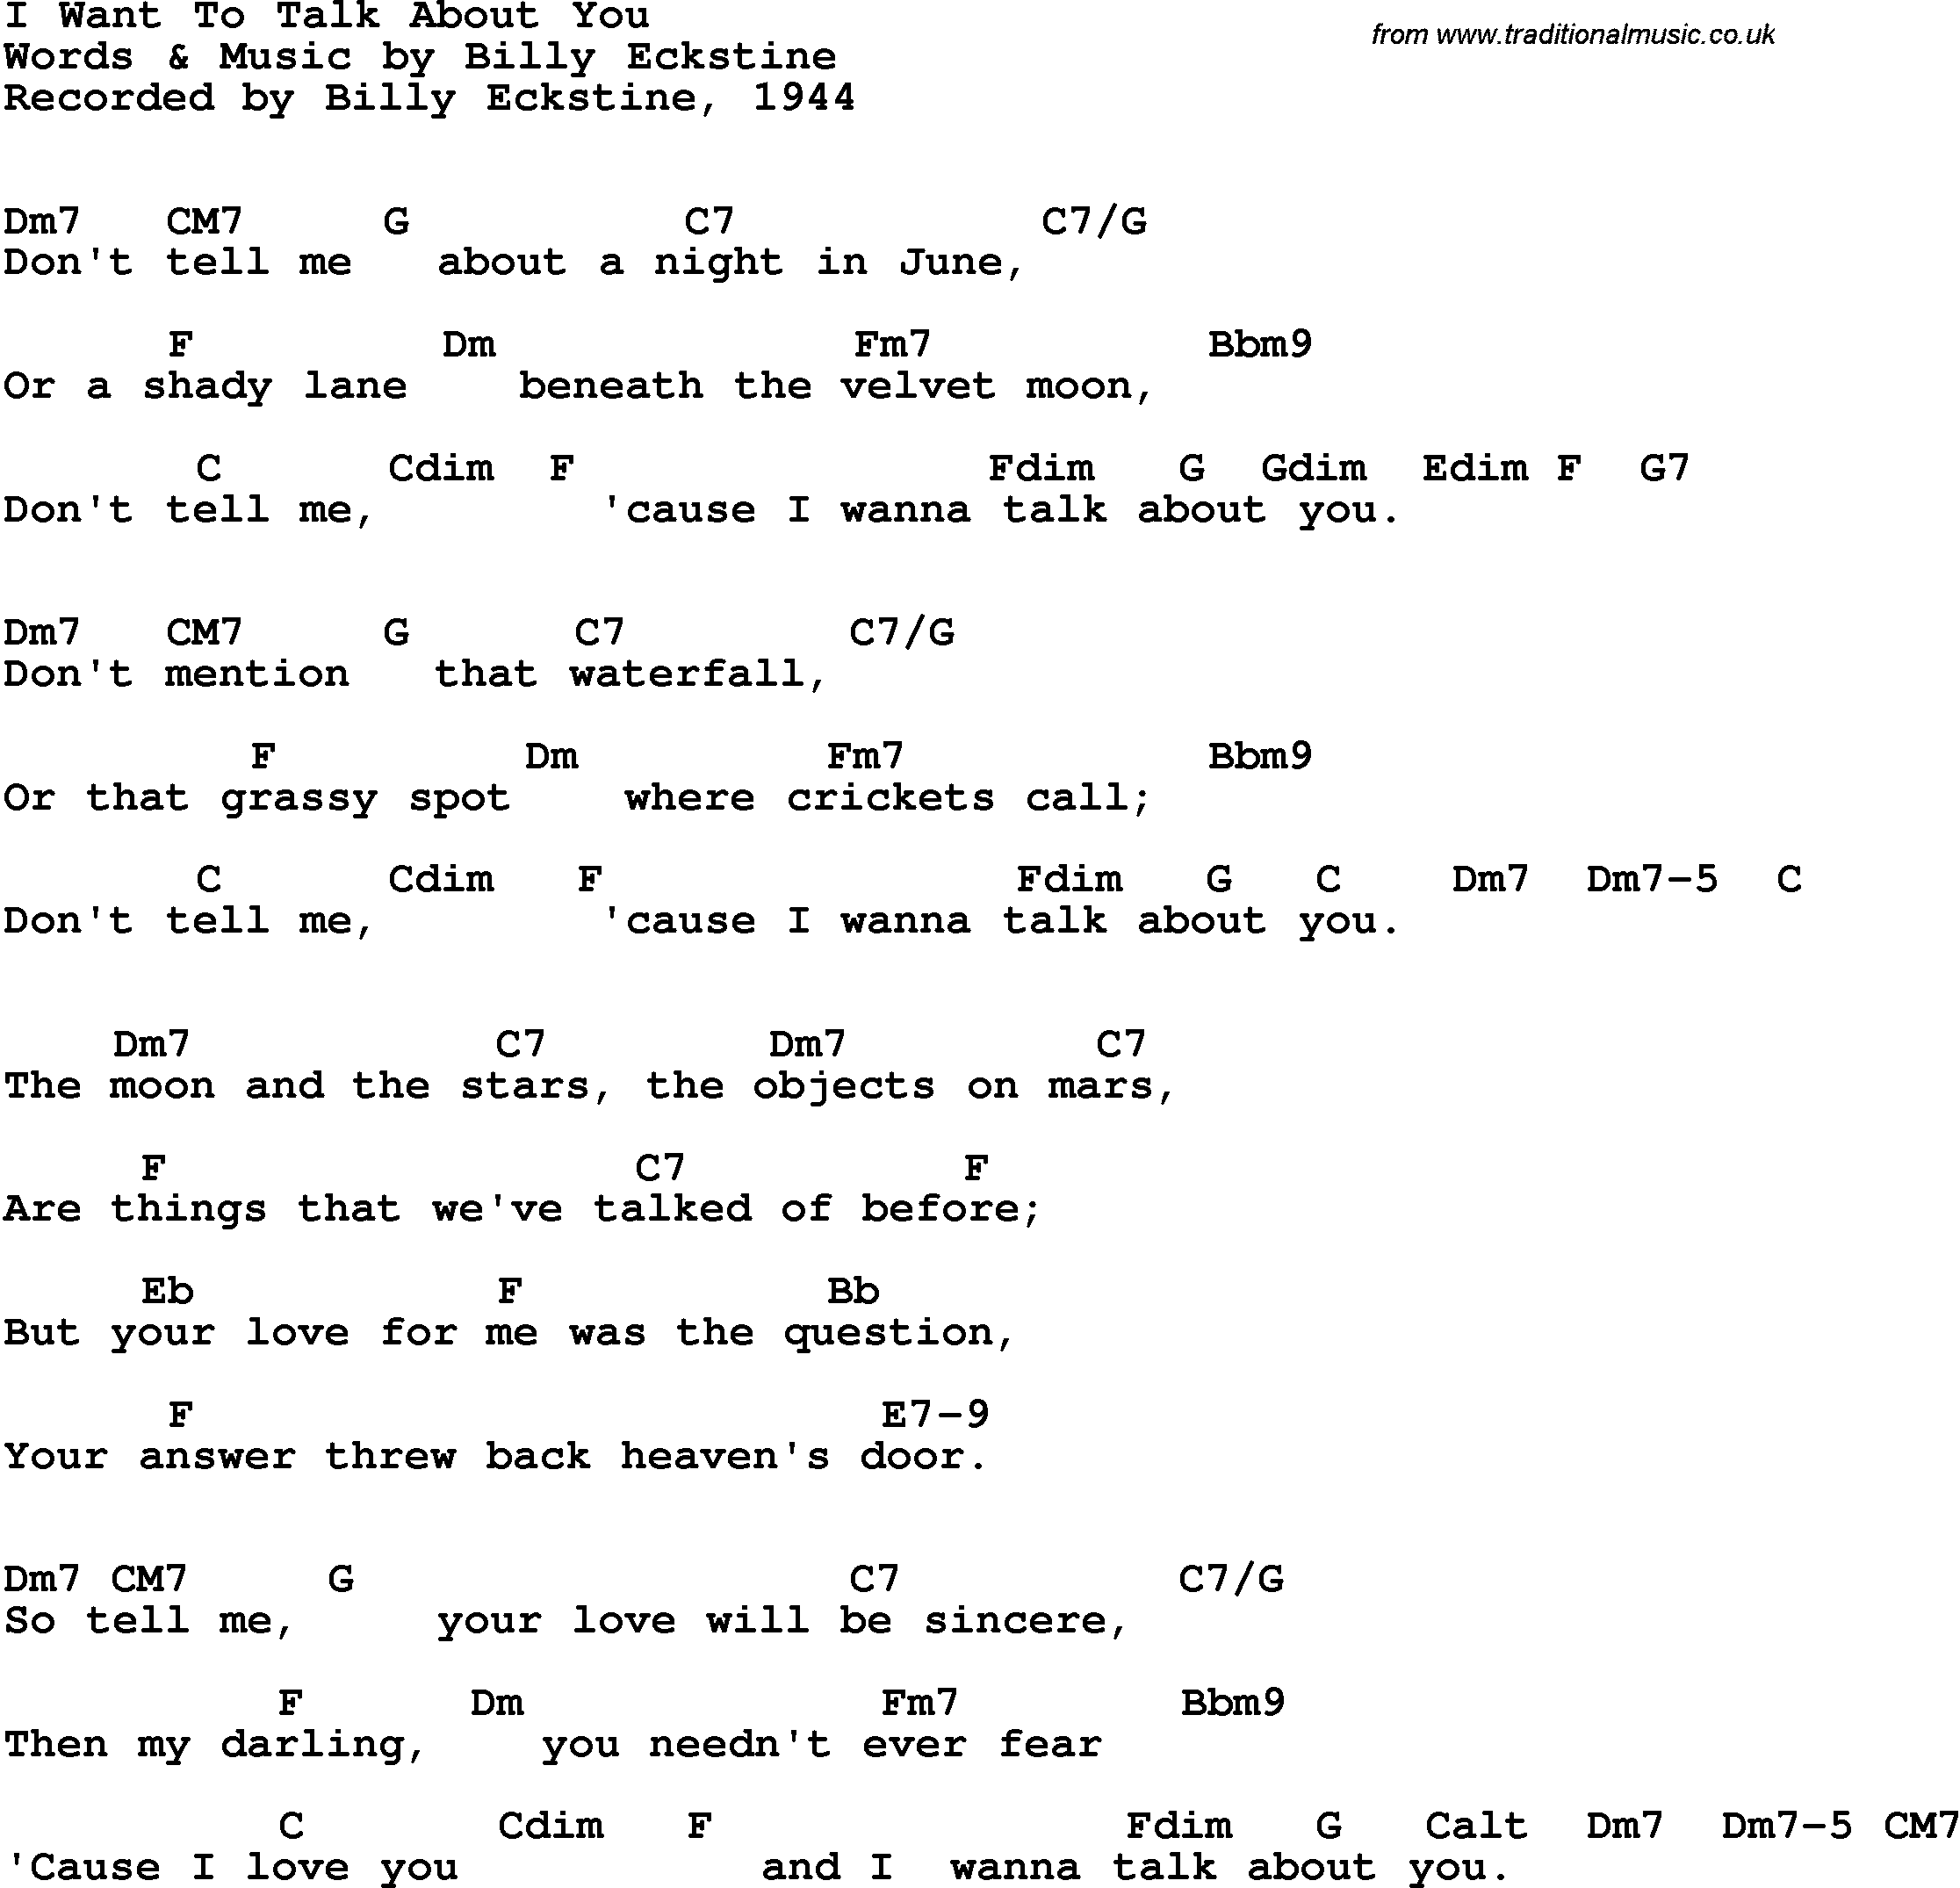 Song lyrics with guitar chords for I Want To Talk About You ...